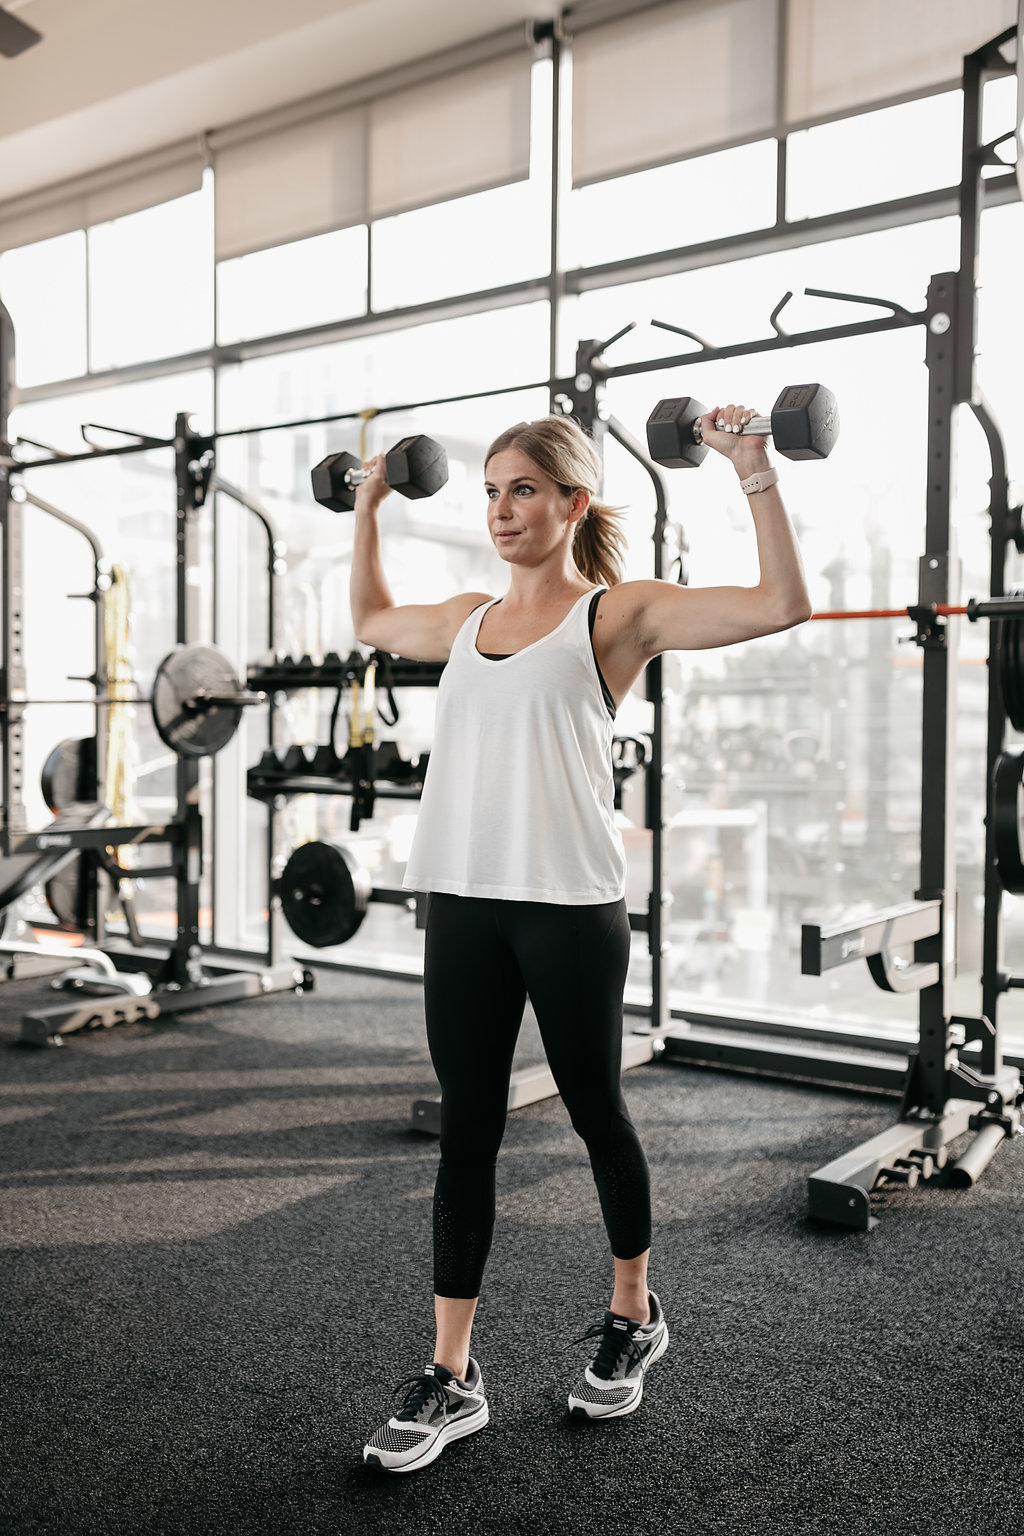 woman doing DUMBBELL OVERHEAD PRESS as exercises for toned arms